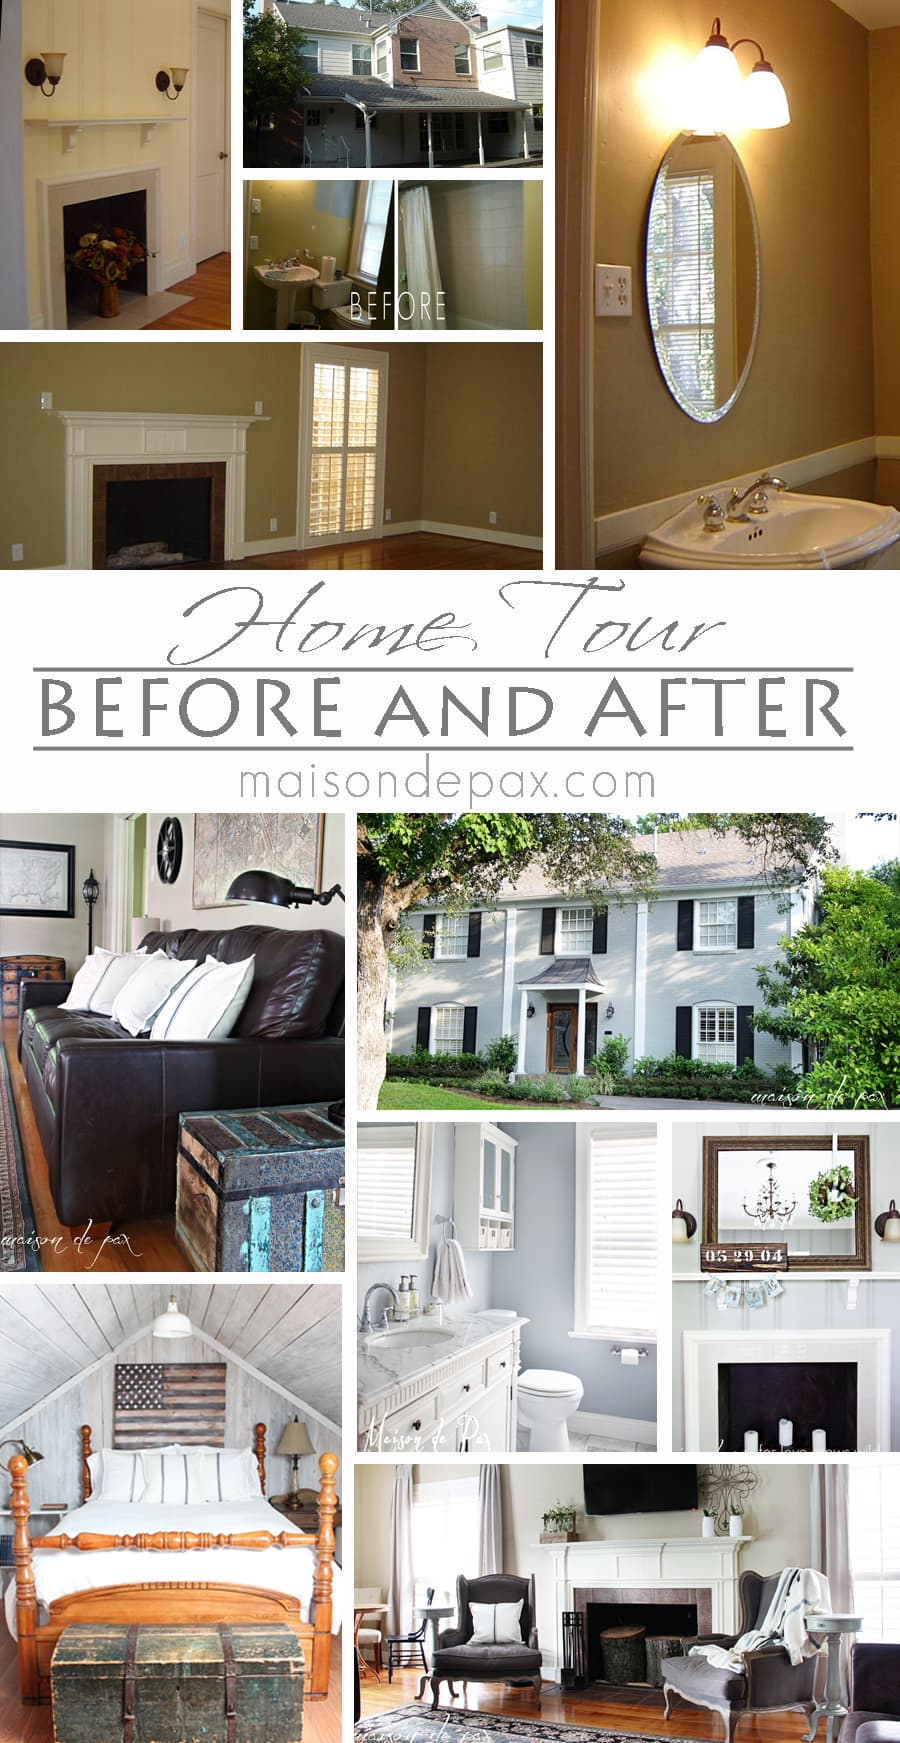 Before and After House Tour- Maison de Pax